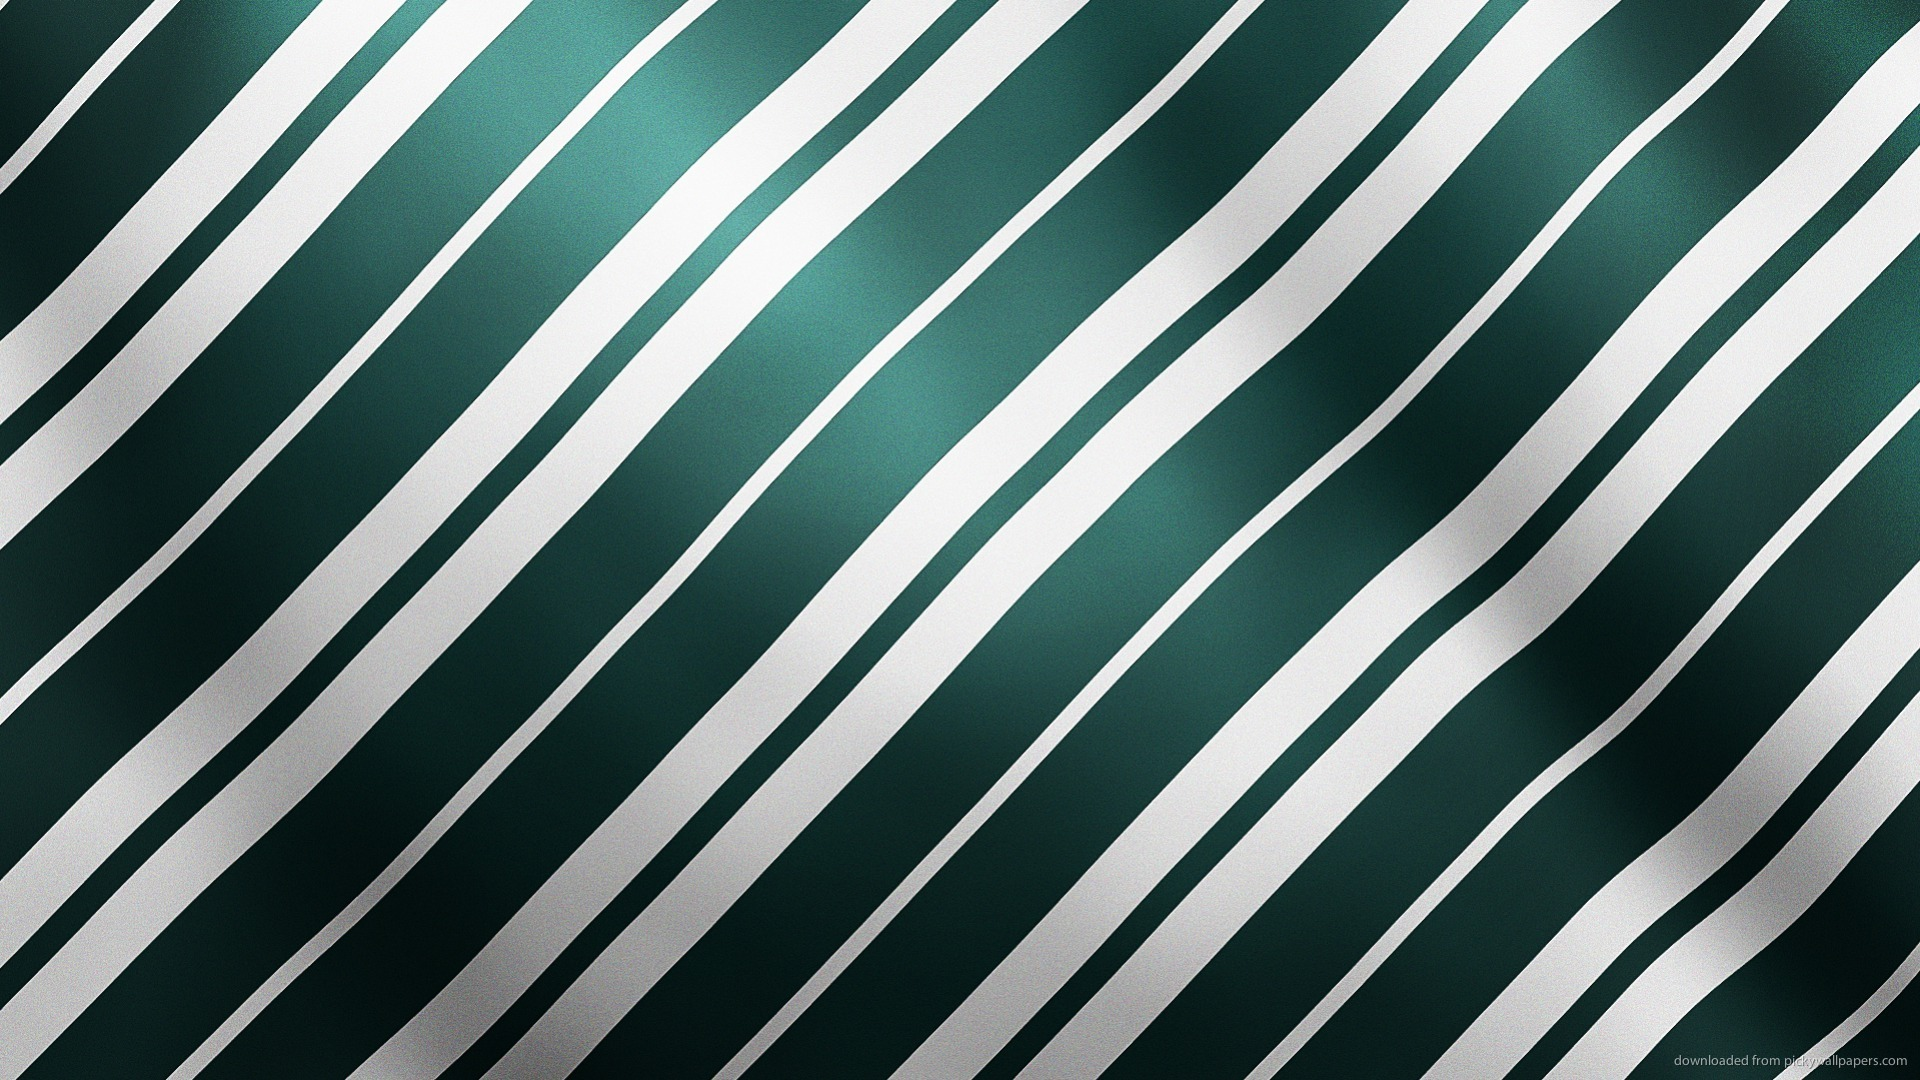 Download 1920x1080 Green And White Stripes Wallpaper 1920x1080